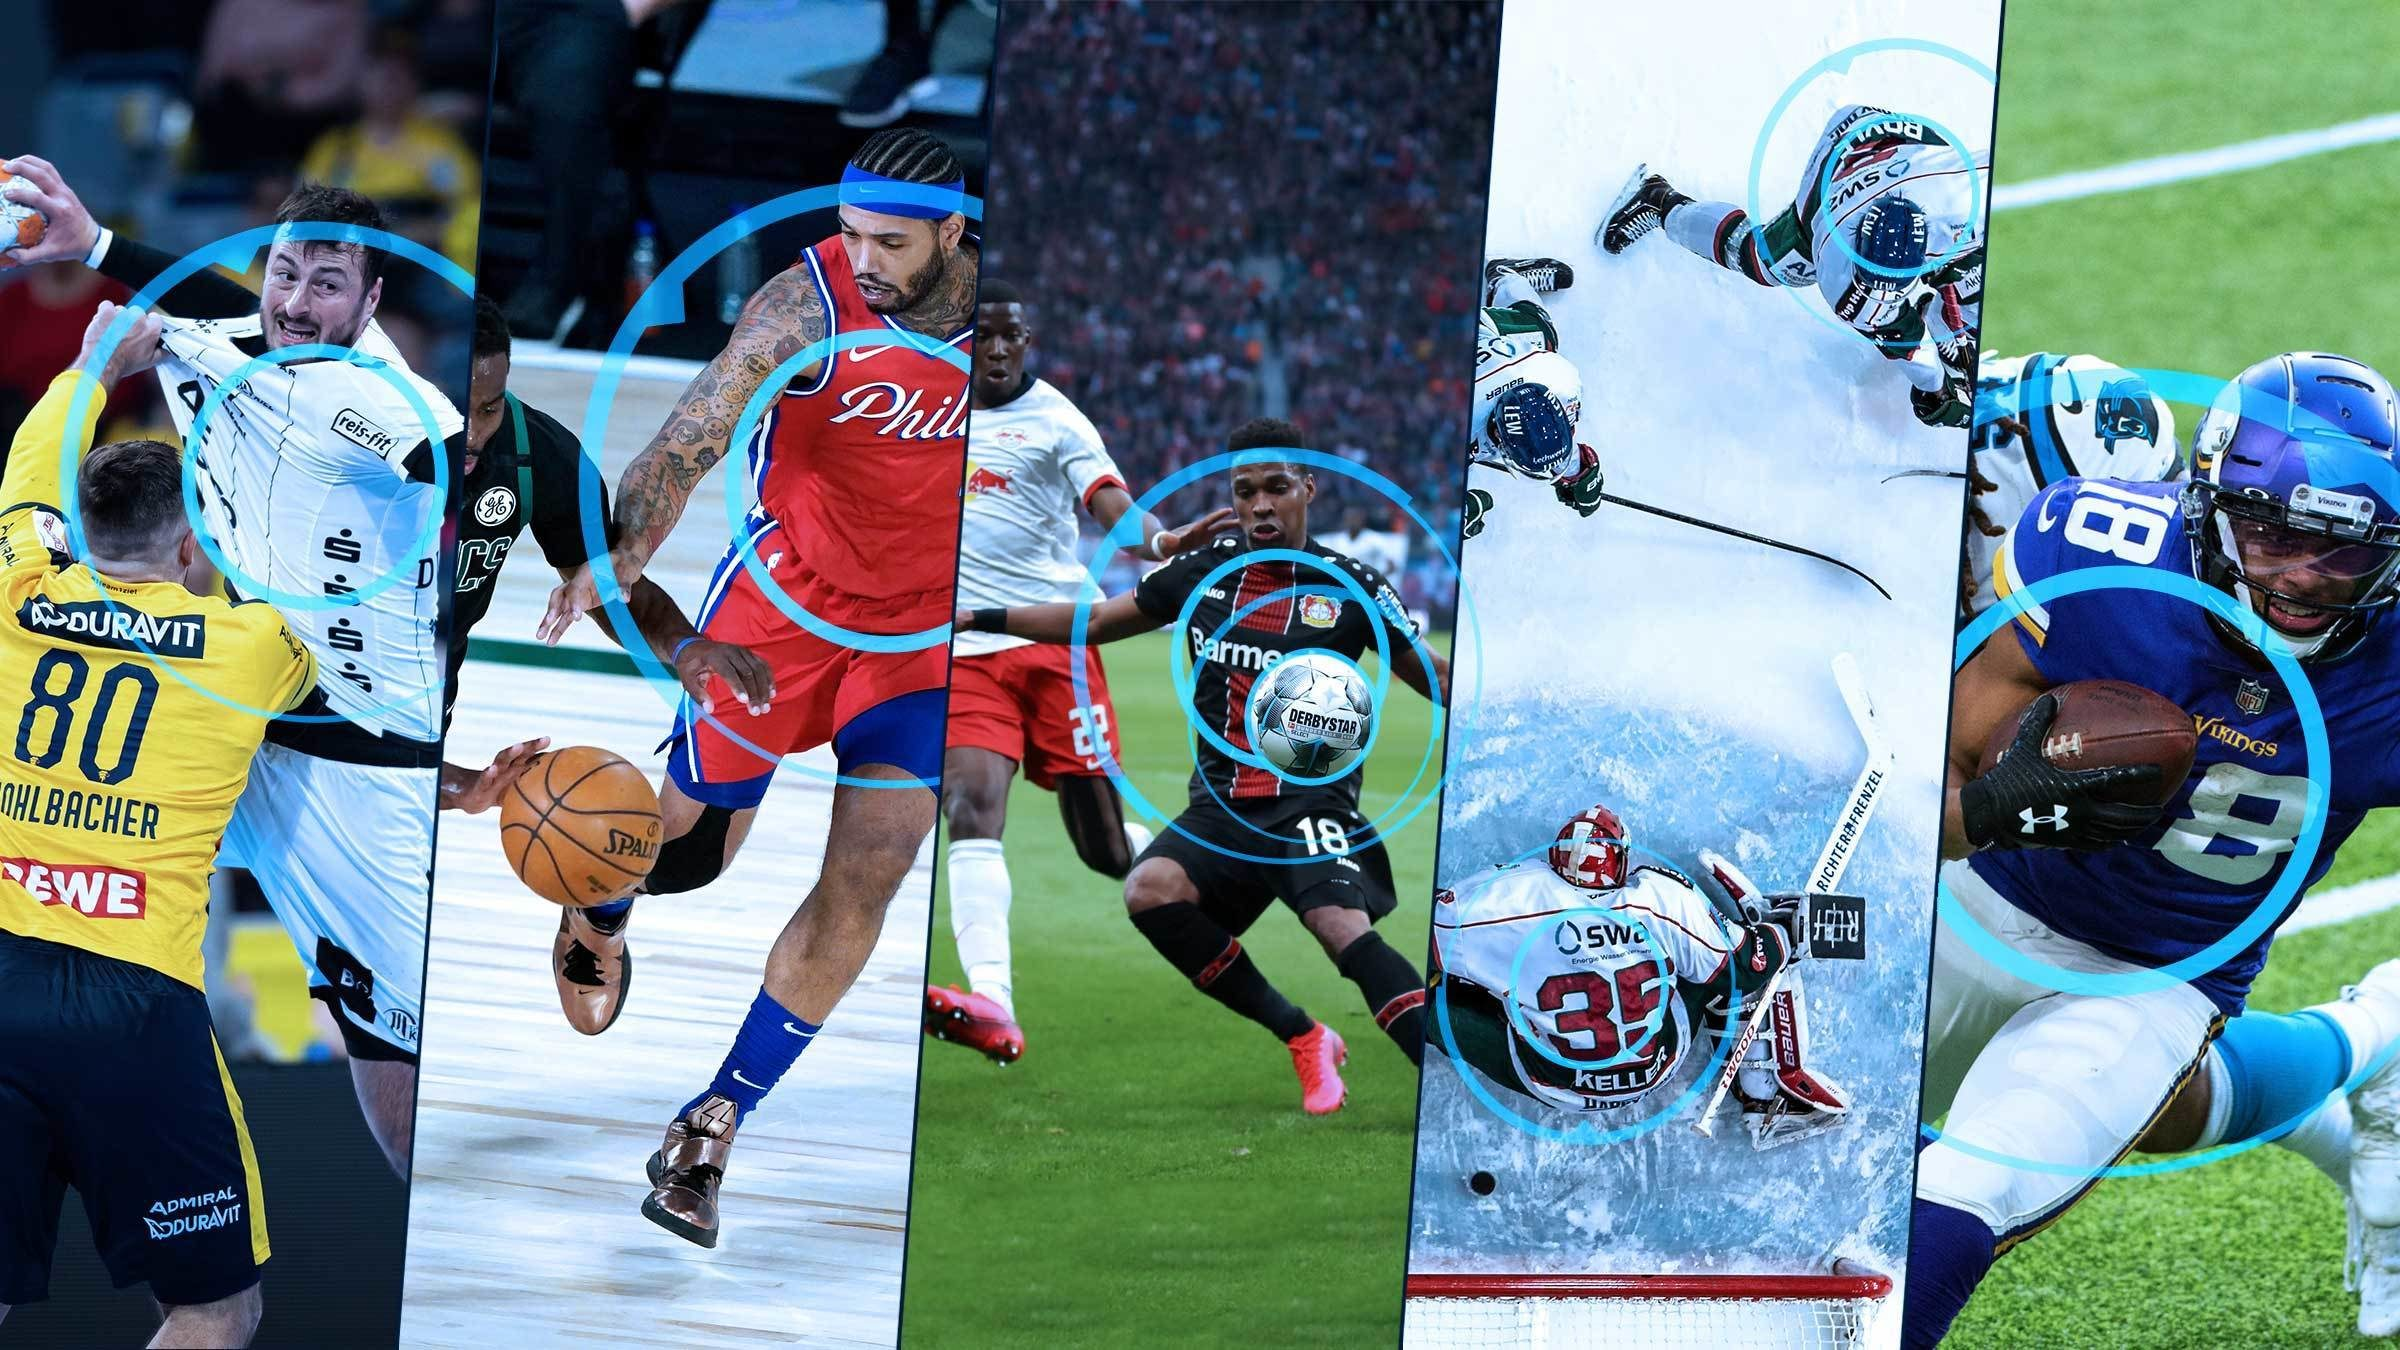 Image collage of different sport sections - Soccer, Basketball, Handball, Ice Hockey, American Football